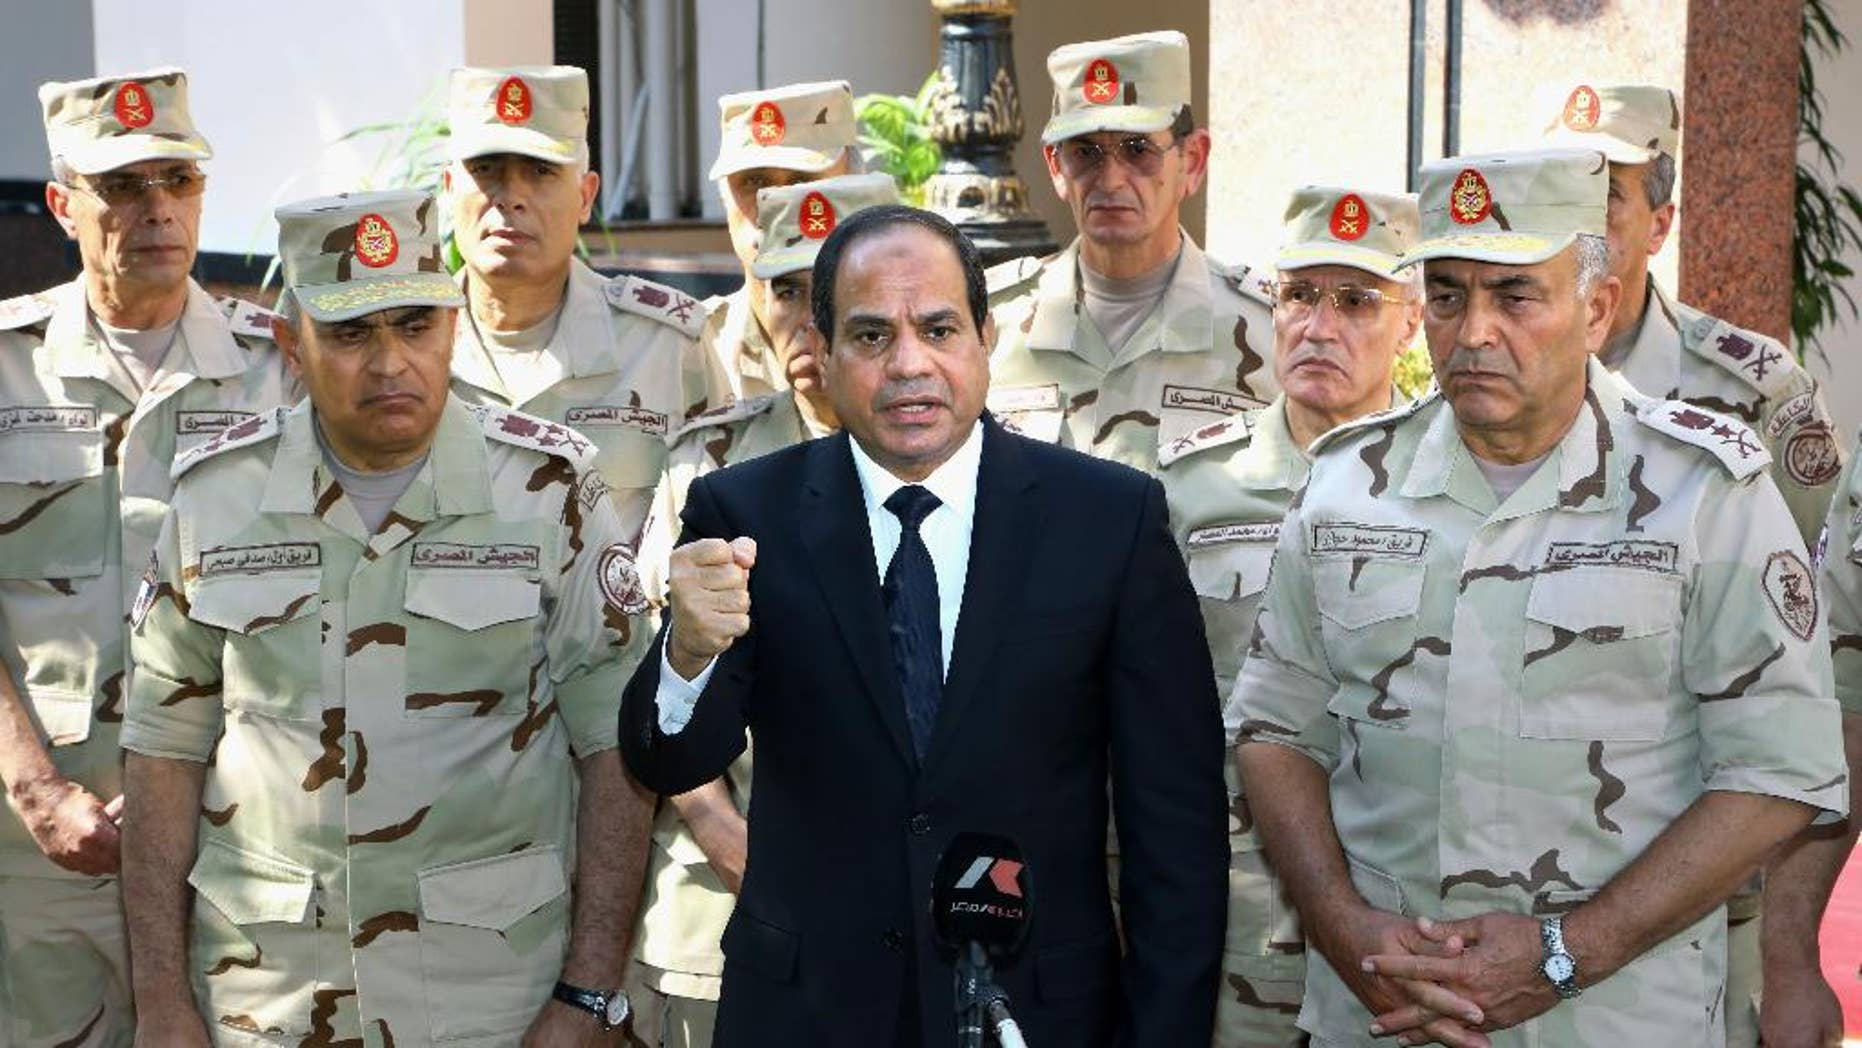 Egyptian President Abdel-Fattah el-Sissi, center, speaks in front of the state-run TV ahead of a military funeral for troops killed in an assault in the Sinai Peninsula, as he stands with army commanders in Cairo. (AP Photo/MENA, Mohammed Samaha)